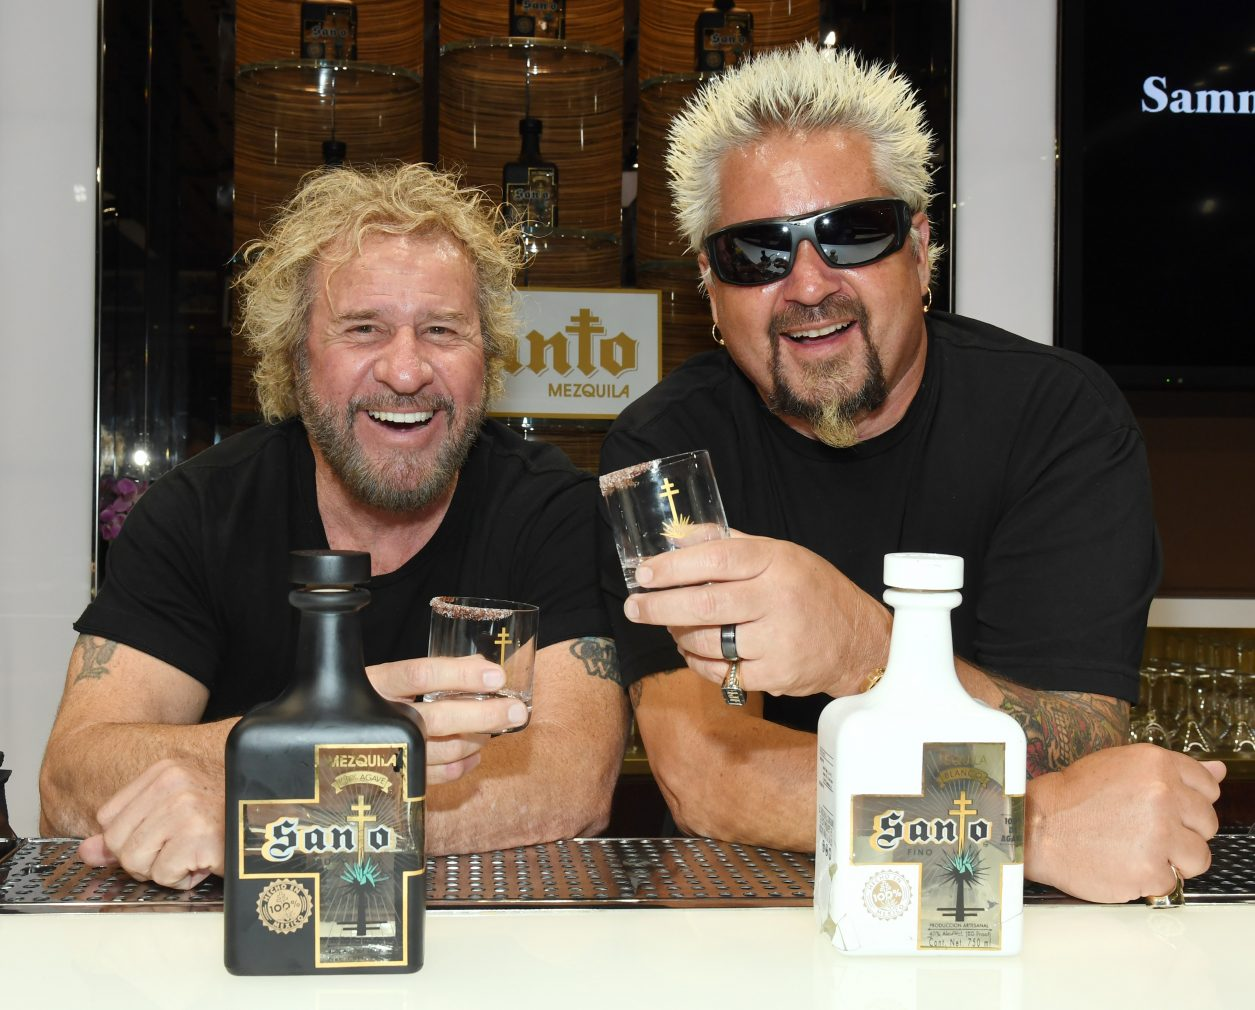 LAS VEGAS, NEVADA - APRIL 04:  Rock & Roll Hall of Fame inductee Sammy Hagar (L) and Emmy Award-winning chef and television personality Guy Fieri pose during the announcement of their partnership with Los Santo and Santo Puro Mezquila, in addition to the launch of Santo Fino Tequila at Southern Glazer's Wine & Spirits on April 4, 2019 in Las Vegas, Nevada.  (Photo by Ethan Miller/Getty Images for Los Santos: Santo Puro Mezquila)